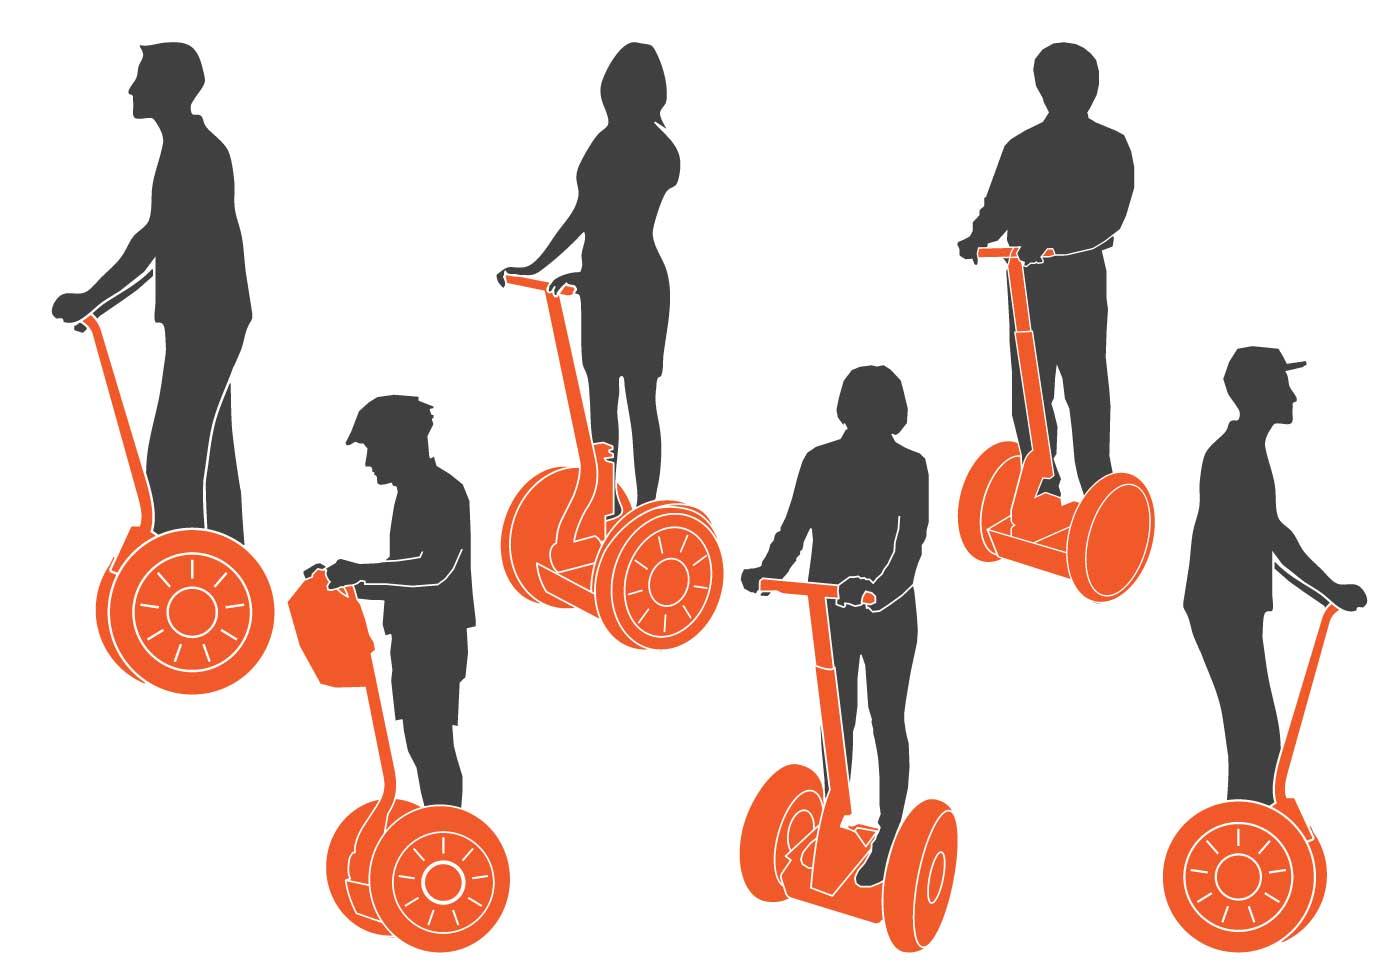 Toyota Of Paris >> Segway Silhouettes - Download Free Vector Art, Stock Graphics & Images